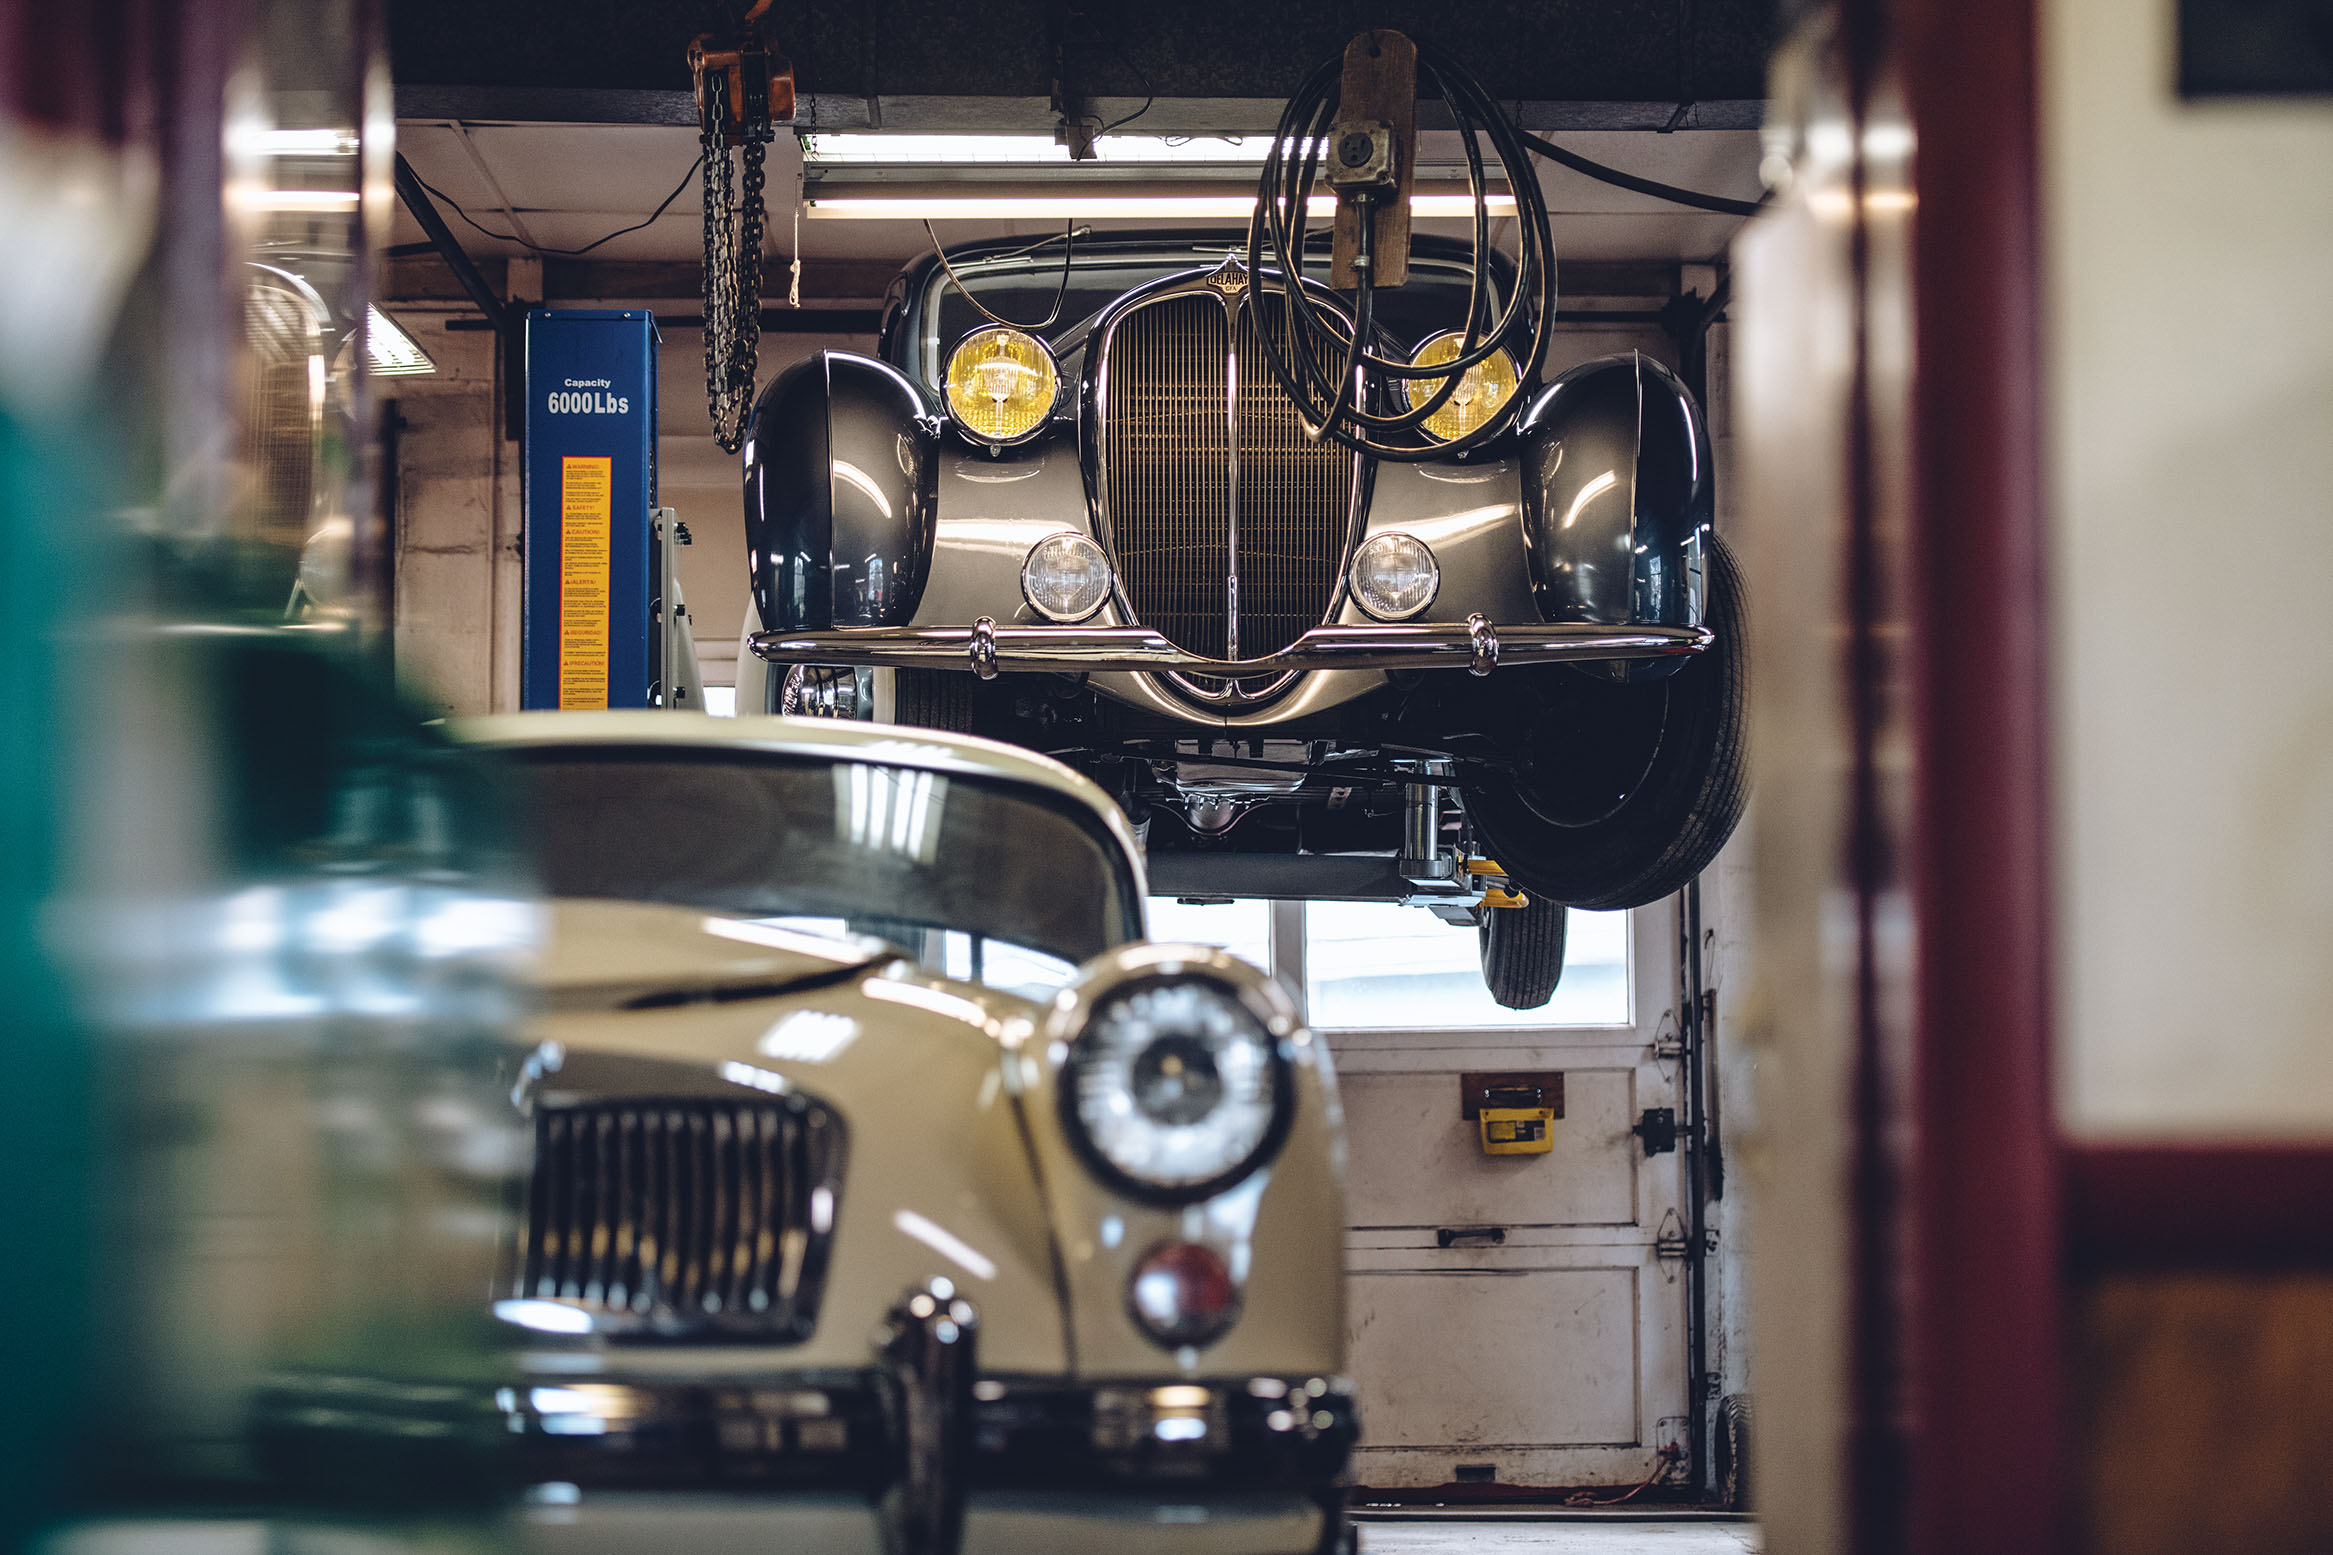 The changeover from Carriage Craft to Proper Noise has resulted in a broader spectrum of clientele. You'll still find MGs, like this white A coupe, but also Volvo PV544s and the occasional Delahaye.